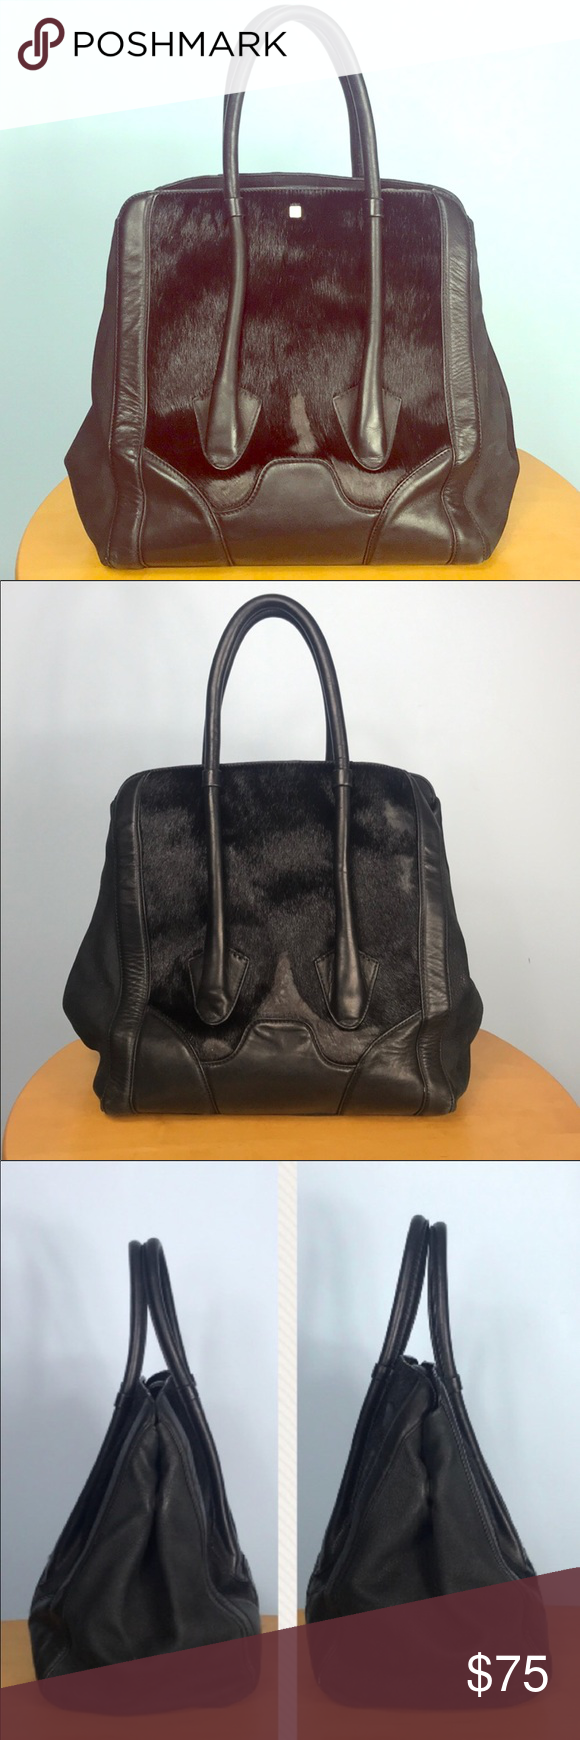 025c433e1fe0 Pour La Victoire 🌺 Butler Bag Calf Hair Tote This Large black on black Pour  la